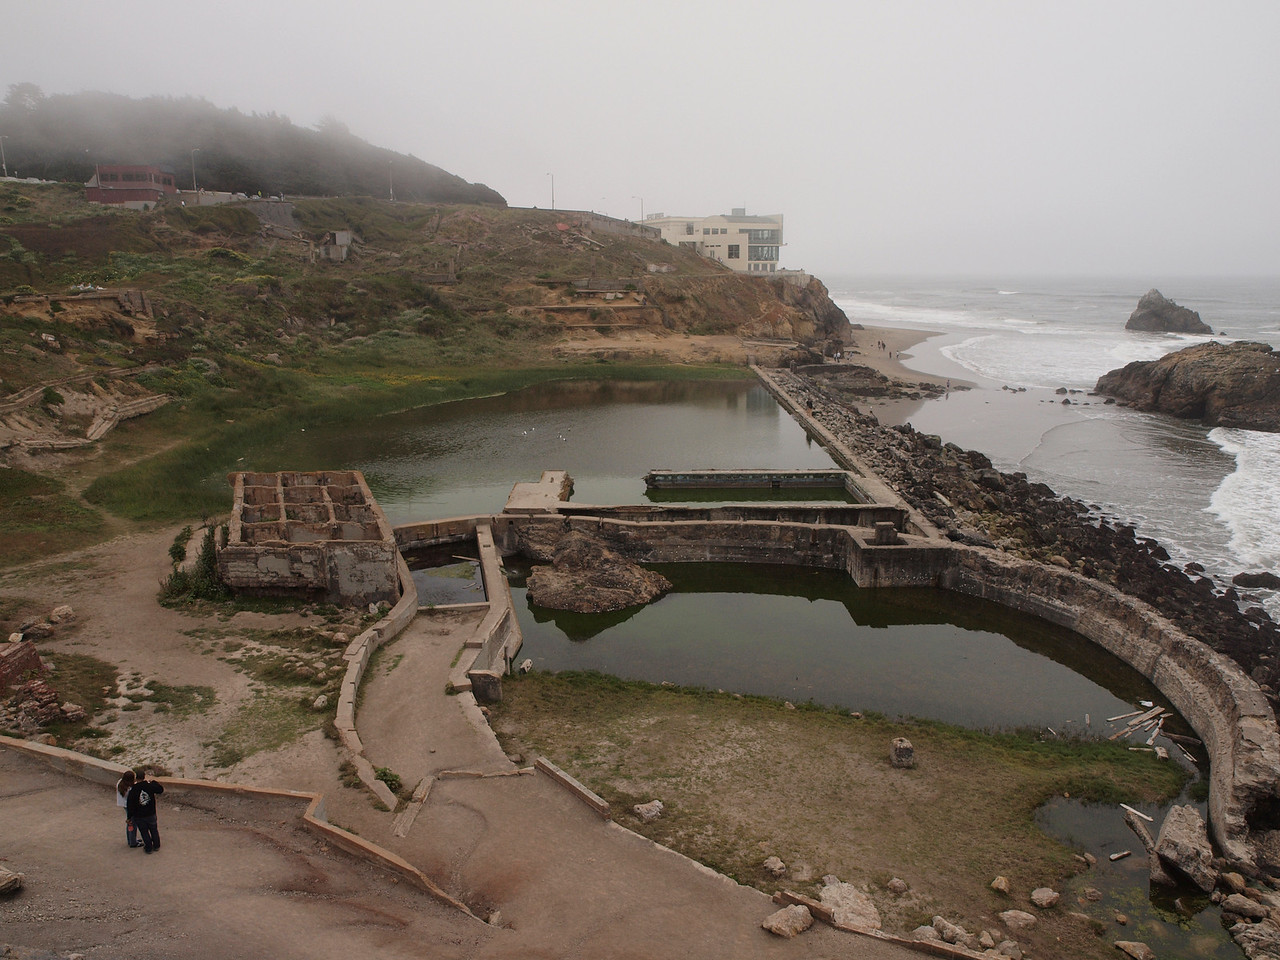 """Building in the upper-right is the wonderful Cliff House restaurant. The ruins in the forground are what is left of what was the Sutro Baths..<br /> <br />  <a href=""""http://en.wikipedia.org/wiki/Sutro_Baths"""">http://en.wikipedia.org/wiki/Sutro_Baths</a>"""